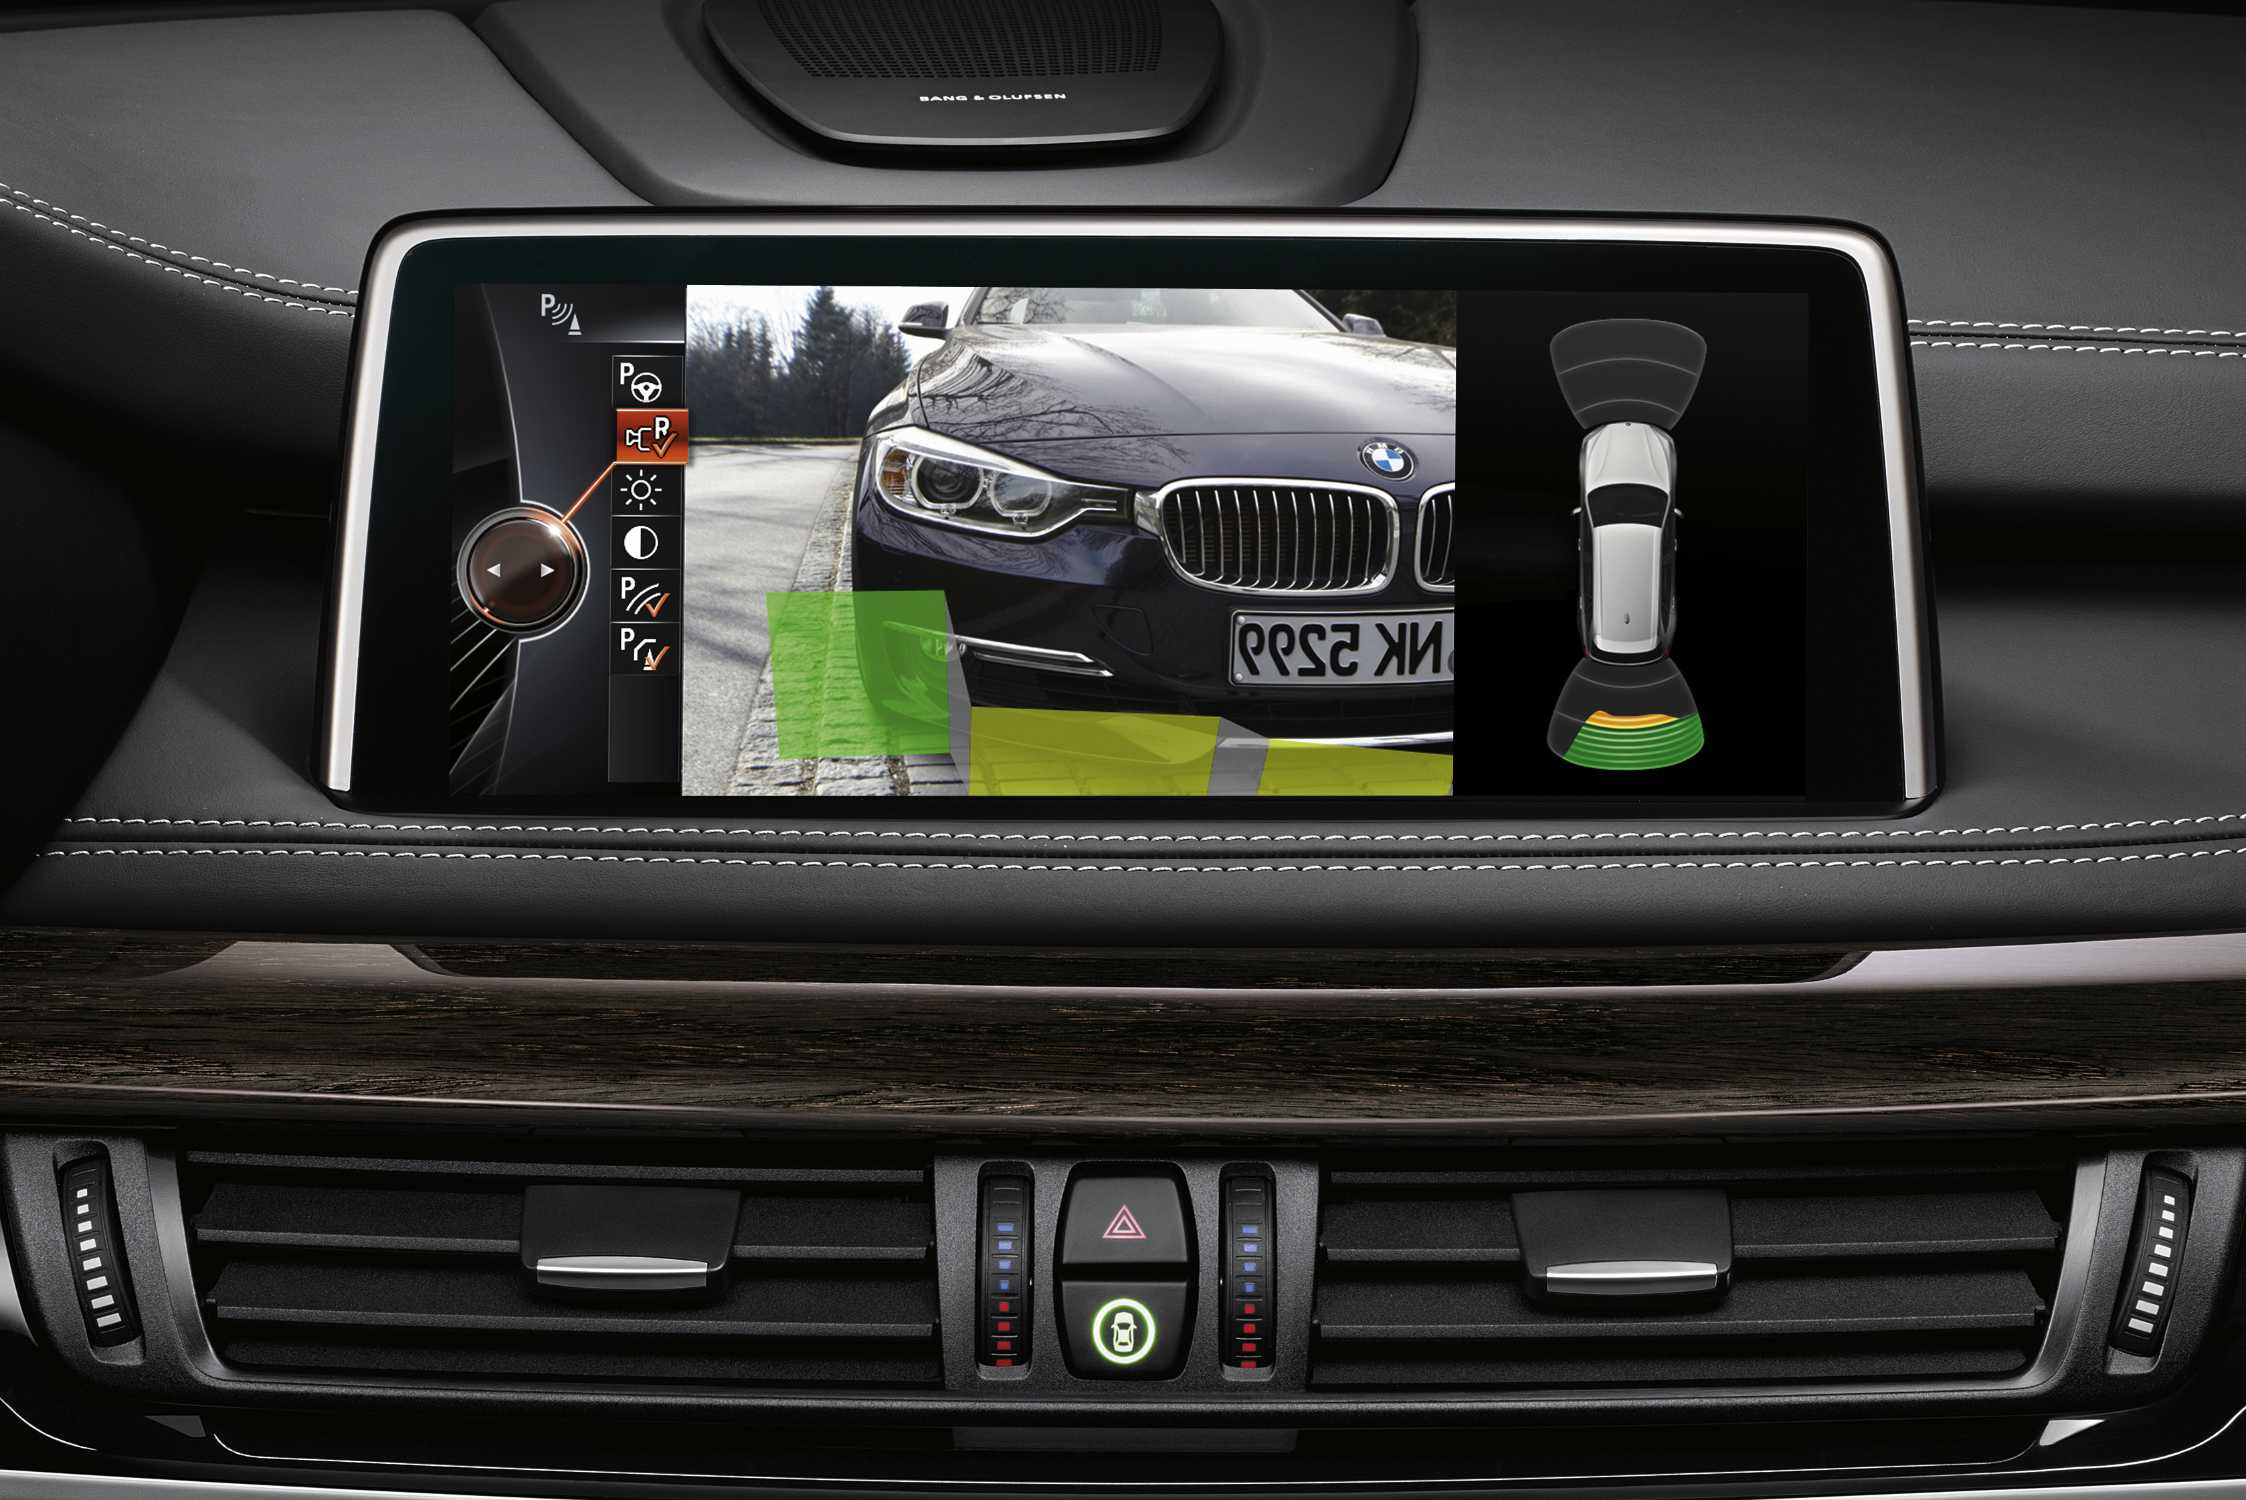 bmw x5 reversing assist camera park distance control. Black Bedroom Furniture Sets. Home Design Ideas